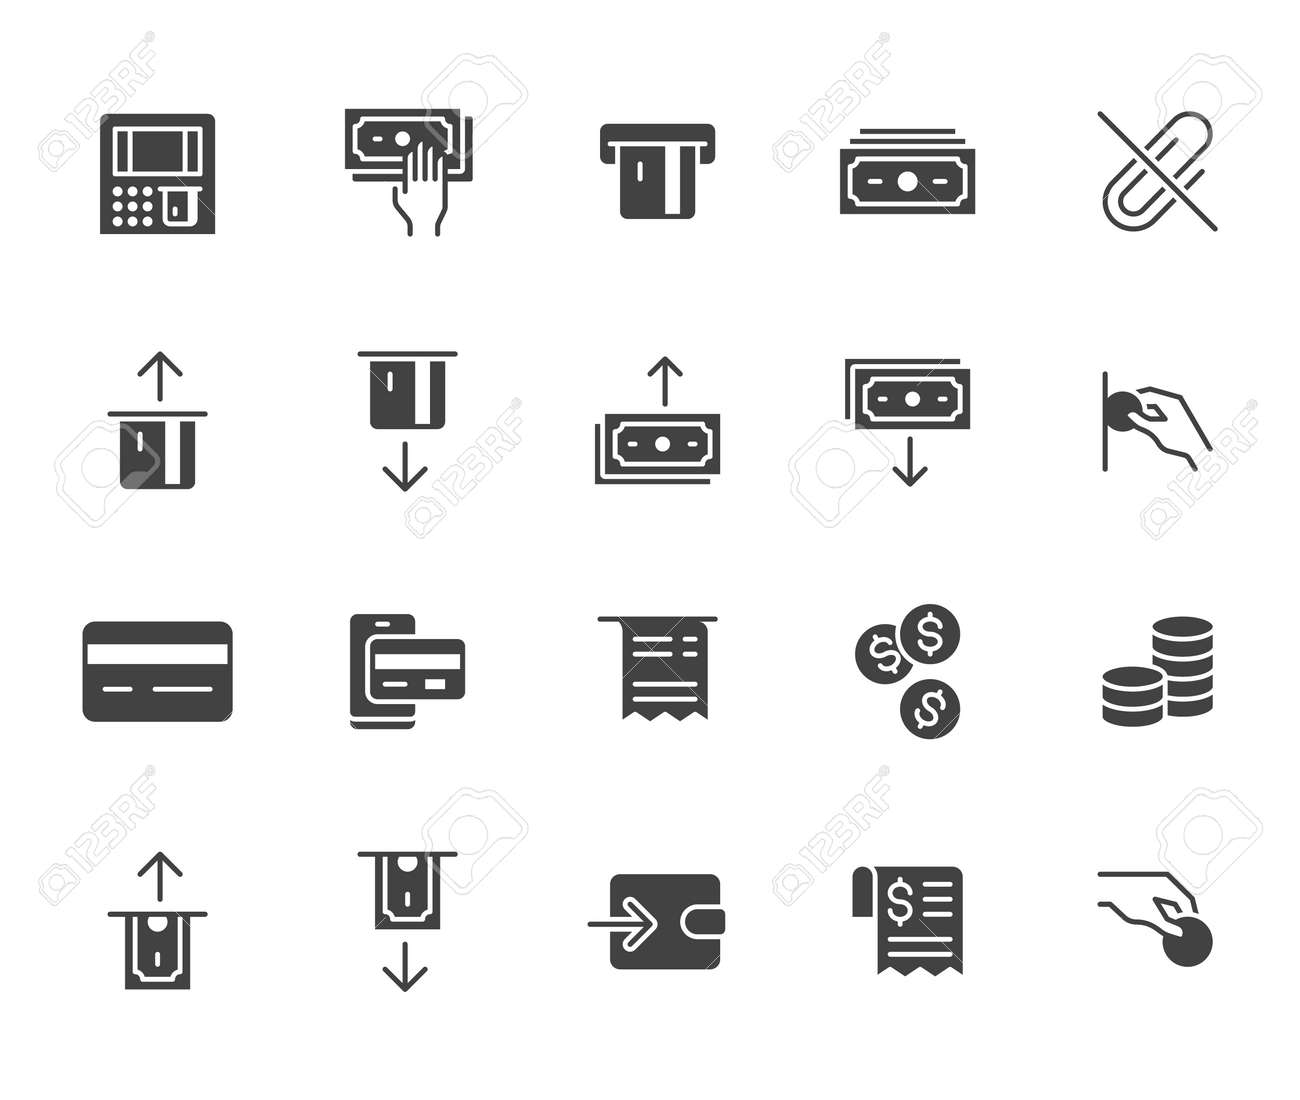 Atm machine flat icon set. Withdraw money, deposit, hand taking cash, receipt black minimal silhouette vector illustration. Simple glyph signs for payment terminal application. - 162491611